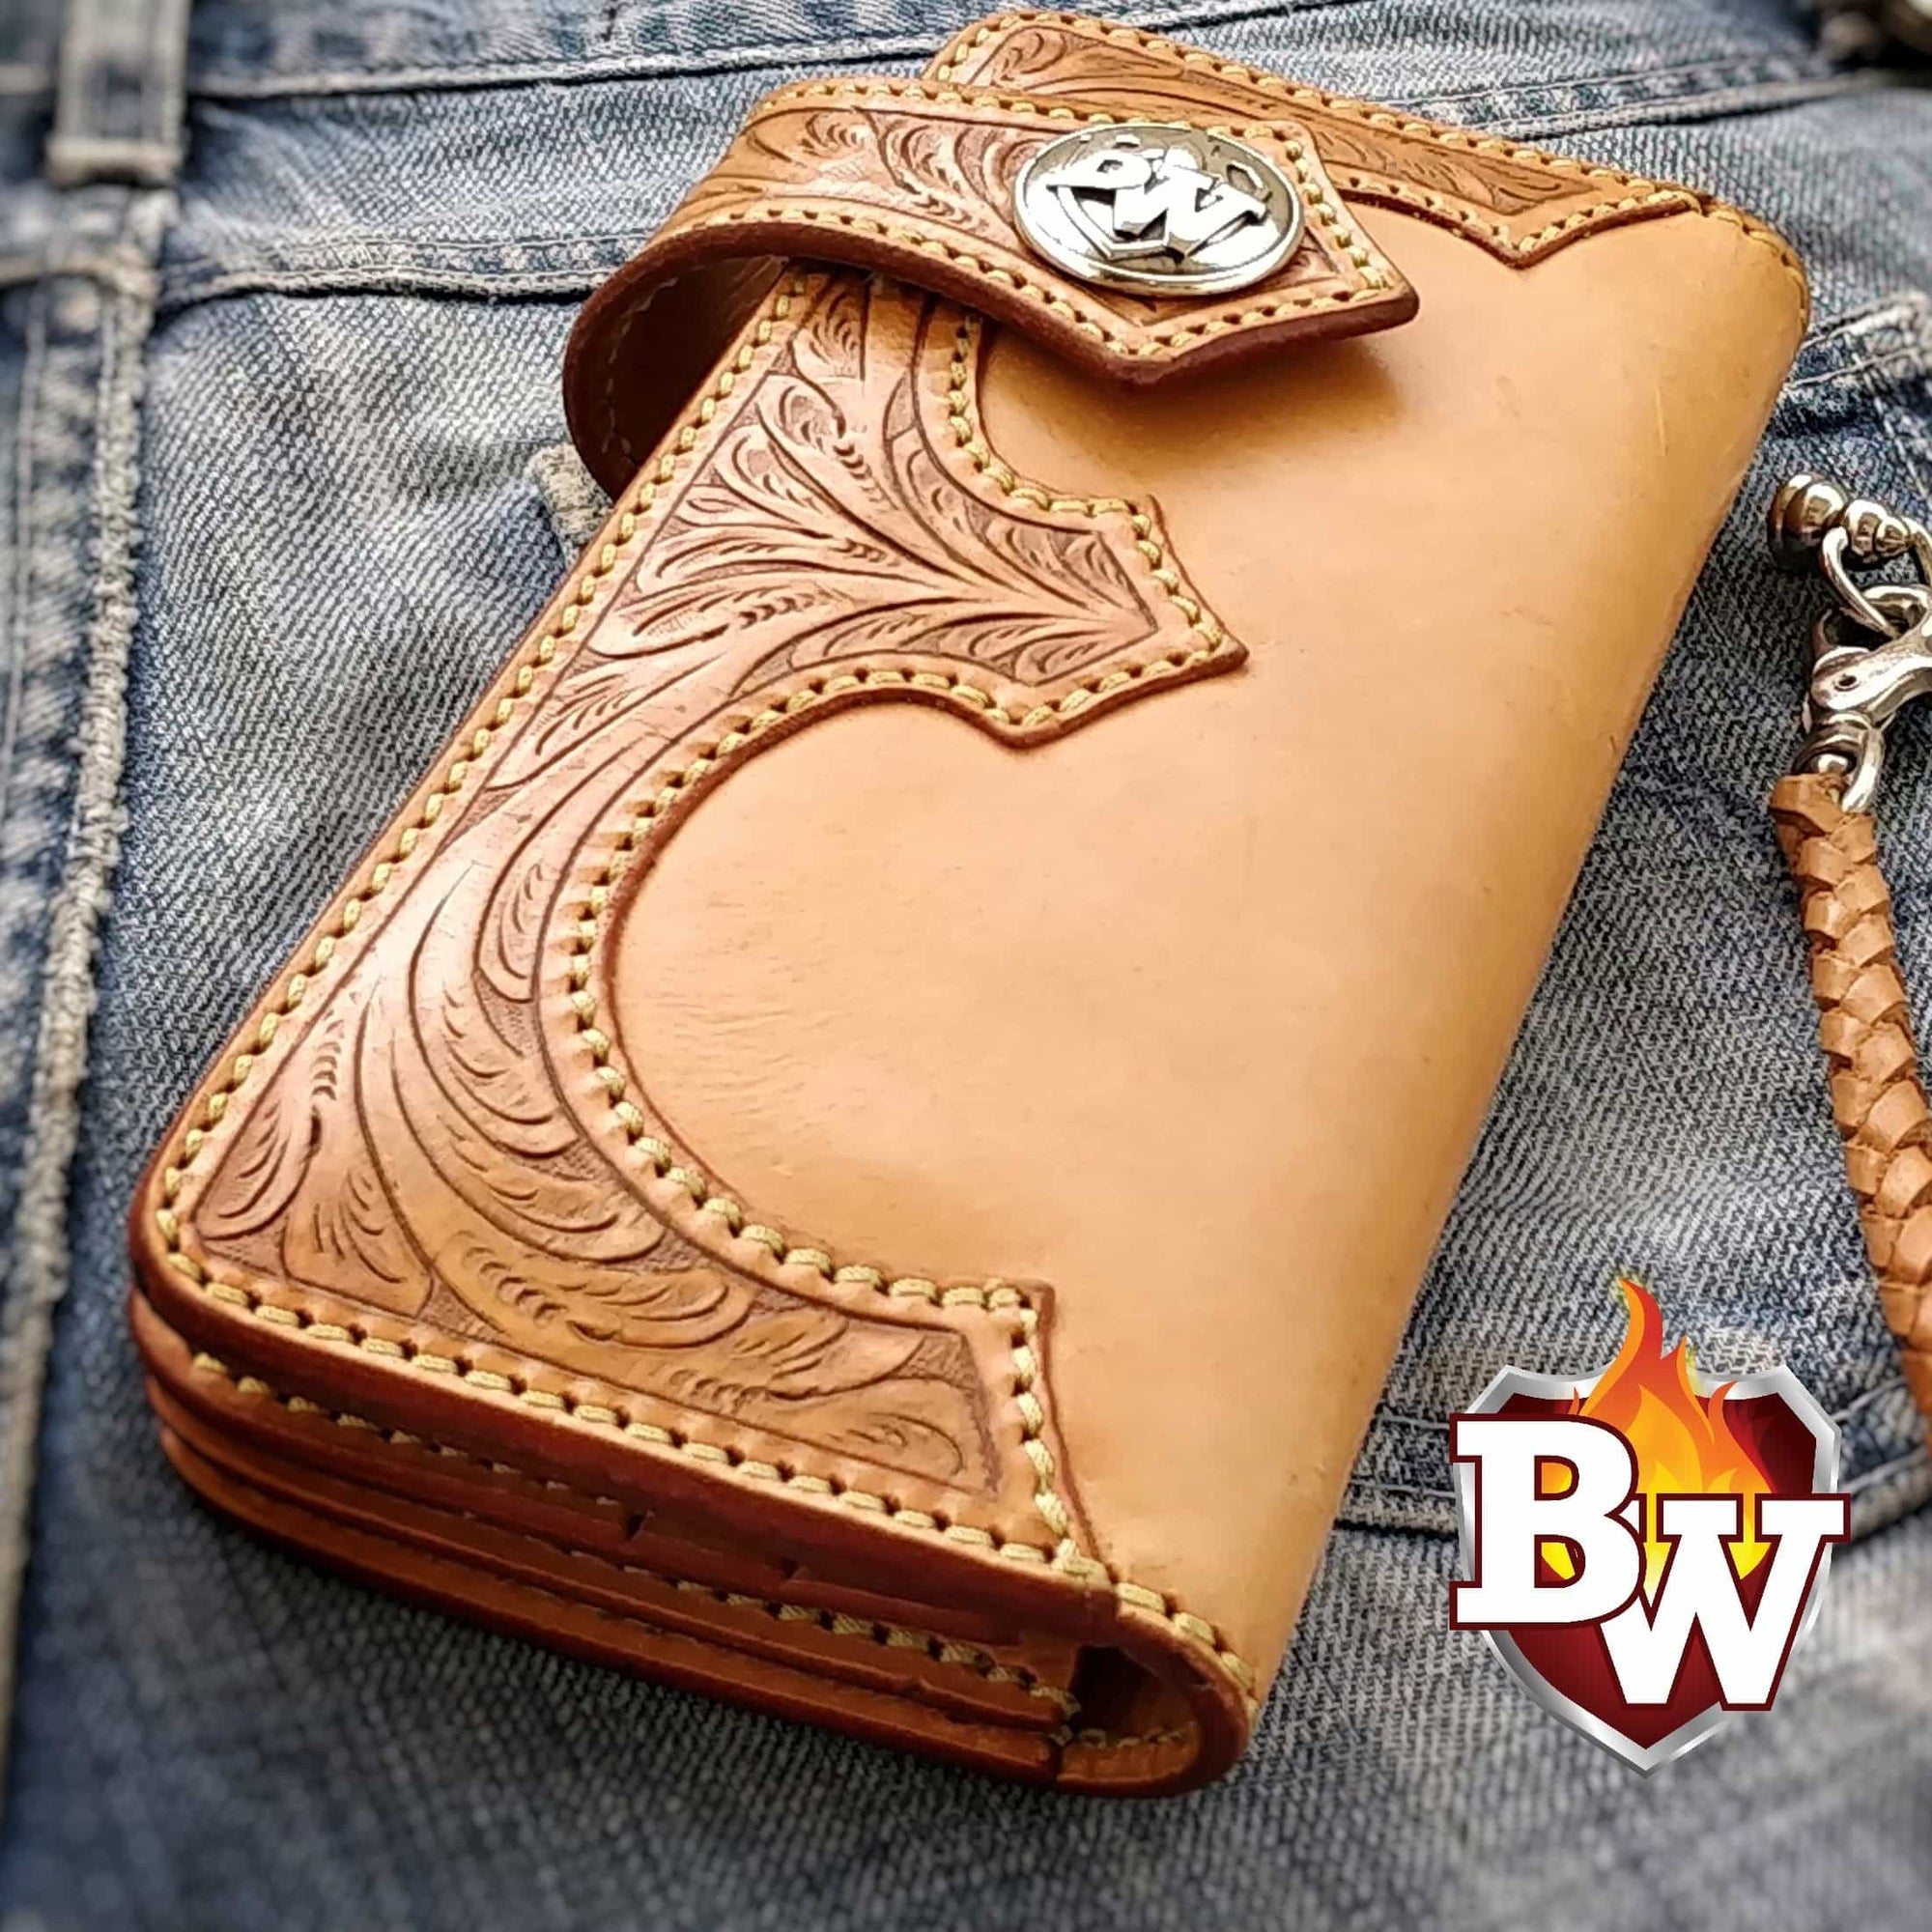 """WYOMING"" 8"" Handmade Hand Tooled Biker Wallet"